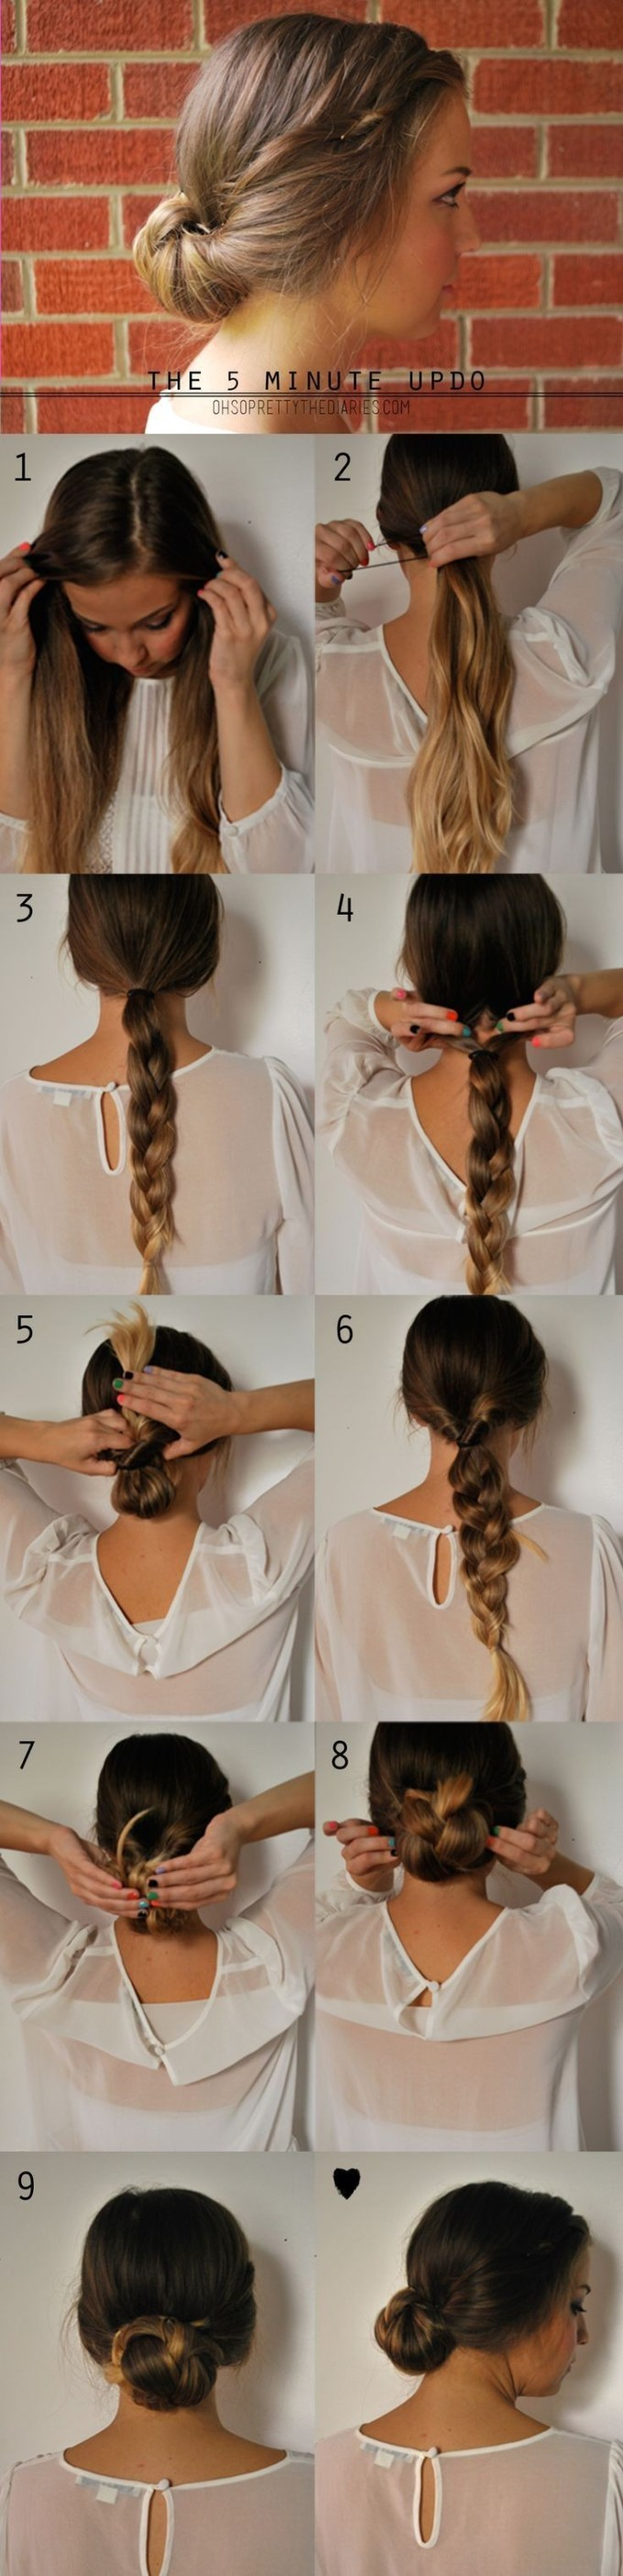 15 cute hairstyles: step-by-step hairstyles for long hair